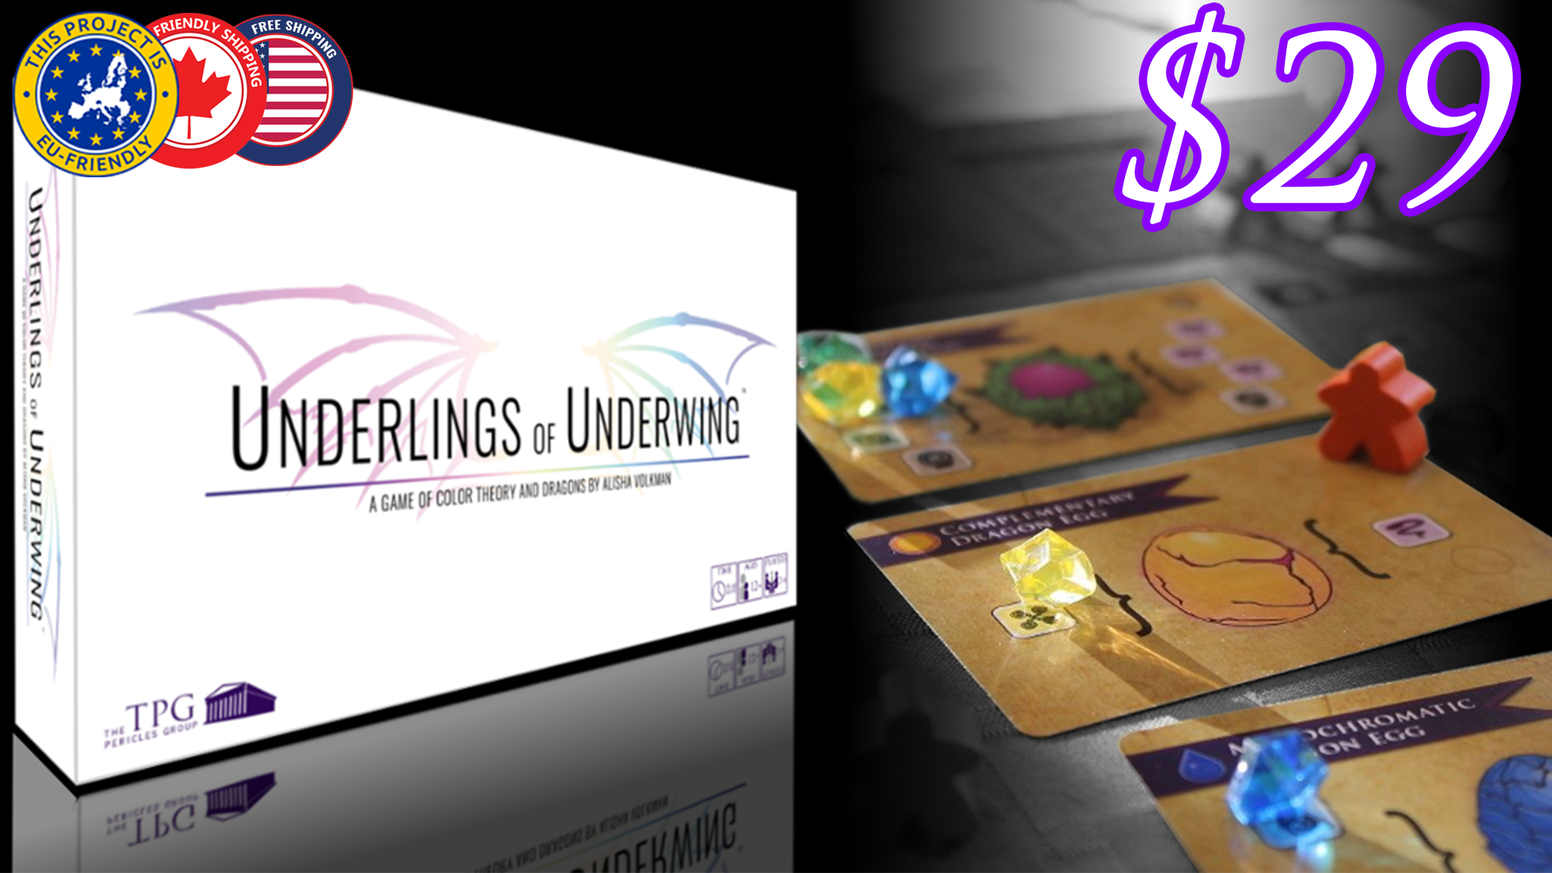 Underlings of Underwing is an award-winning worker placement game in which you infuse & hatch dragon eggs to become a great Dragonlord!